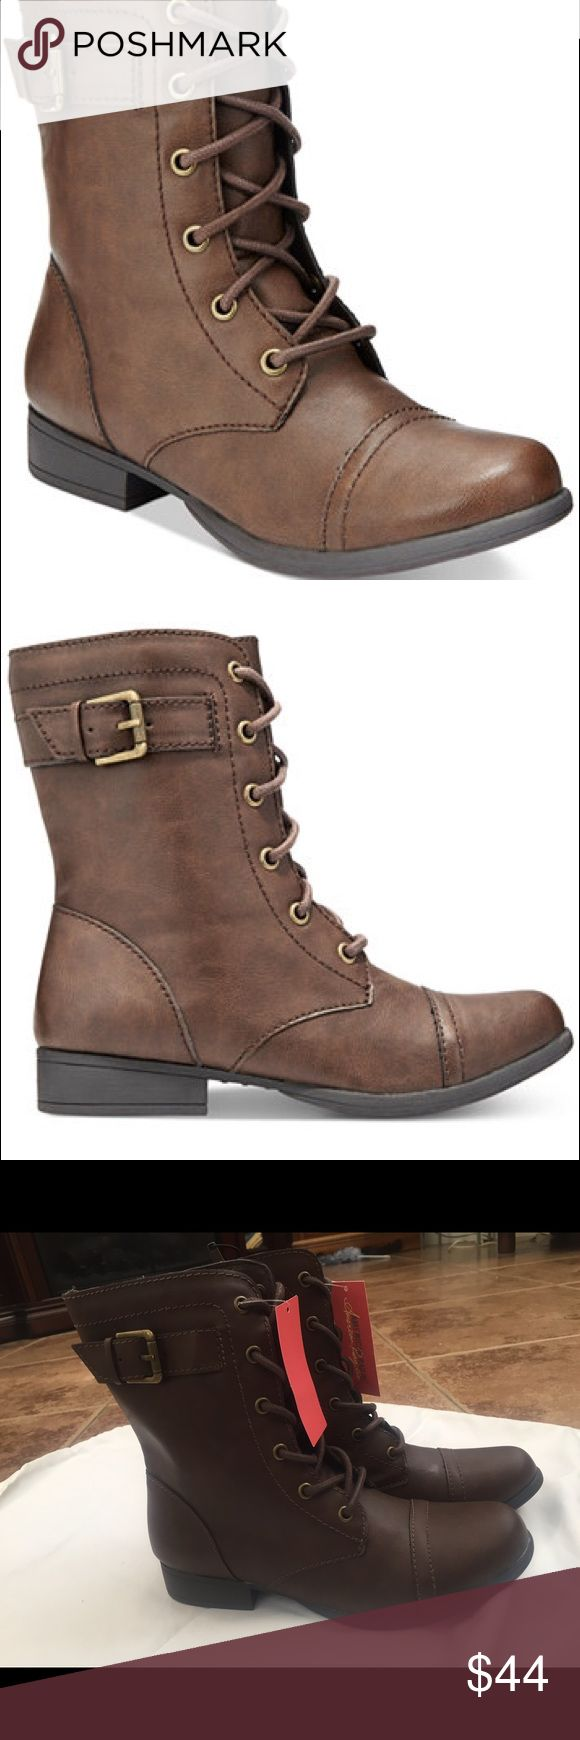 American Rag combat boots New with tags American Rag Shoes Combat & Moto Boots